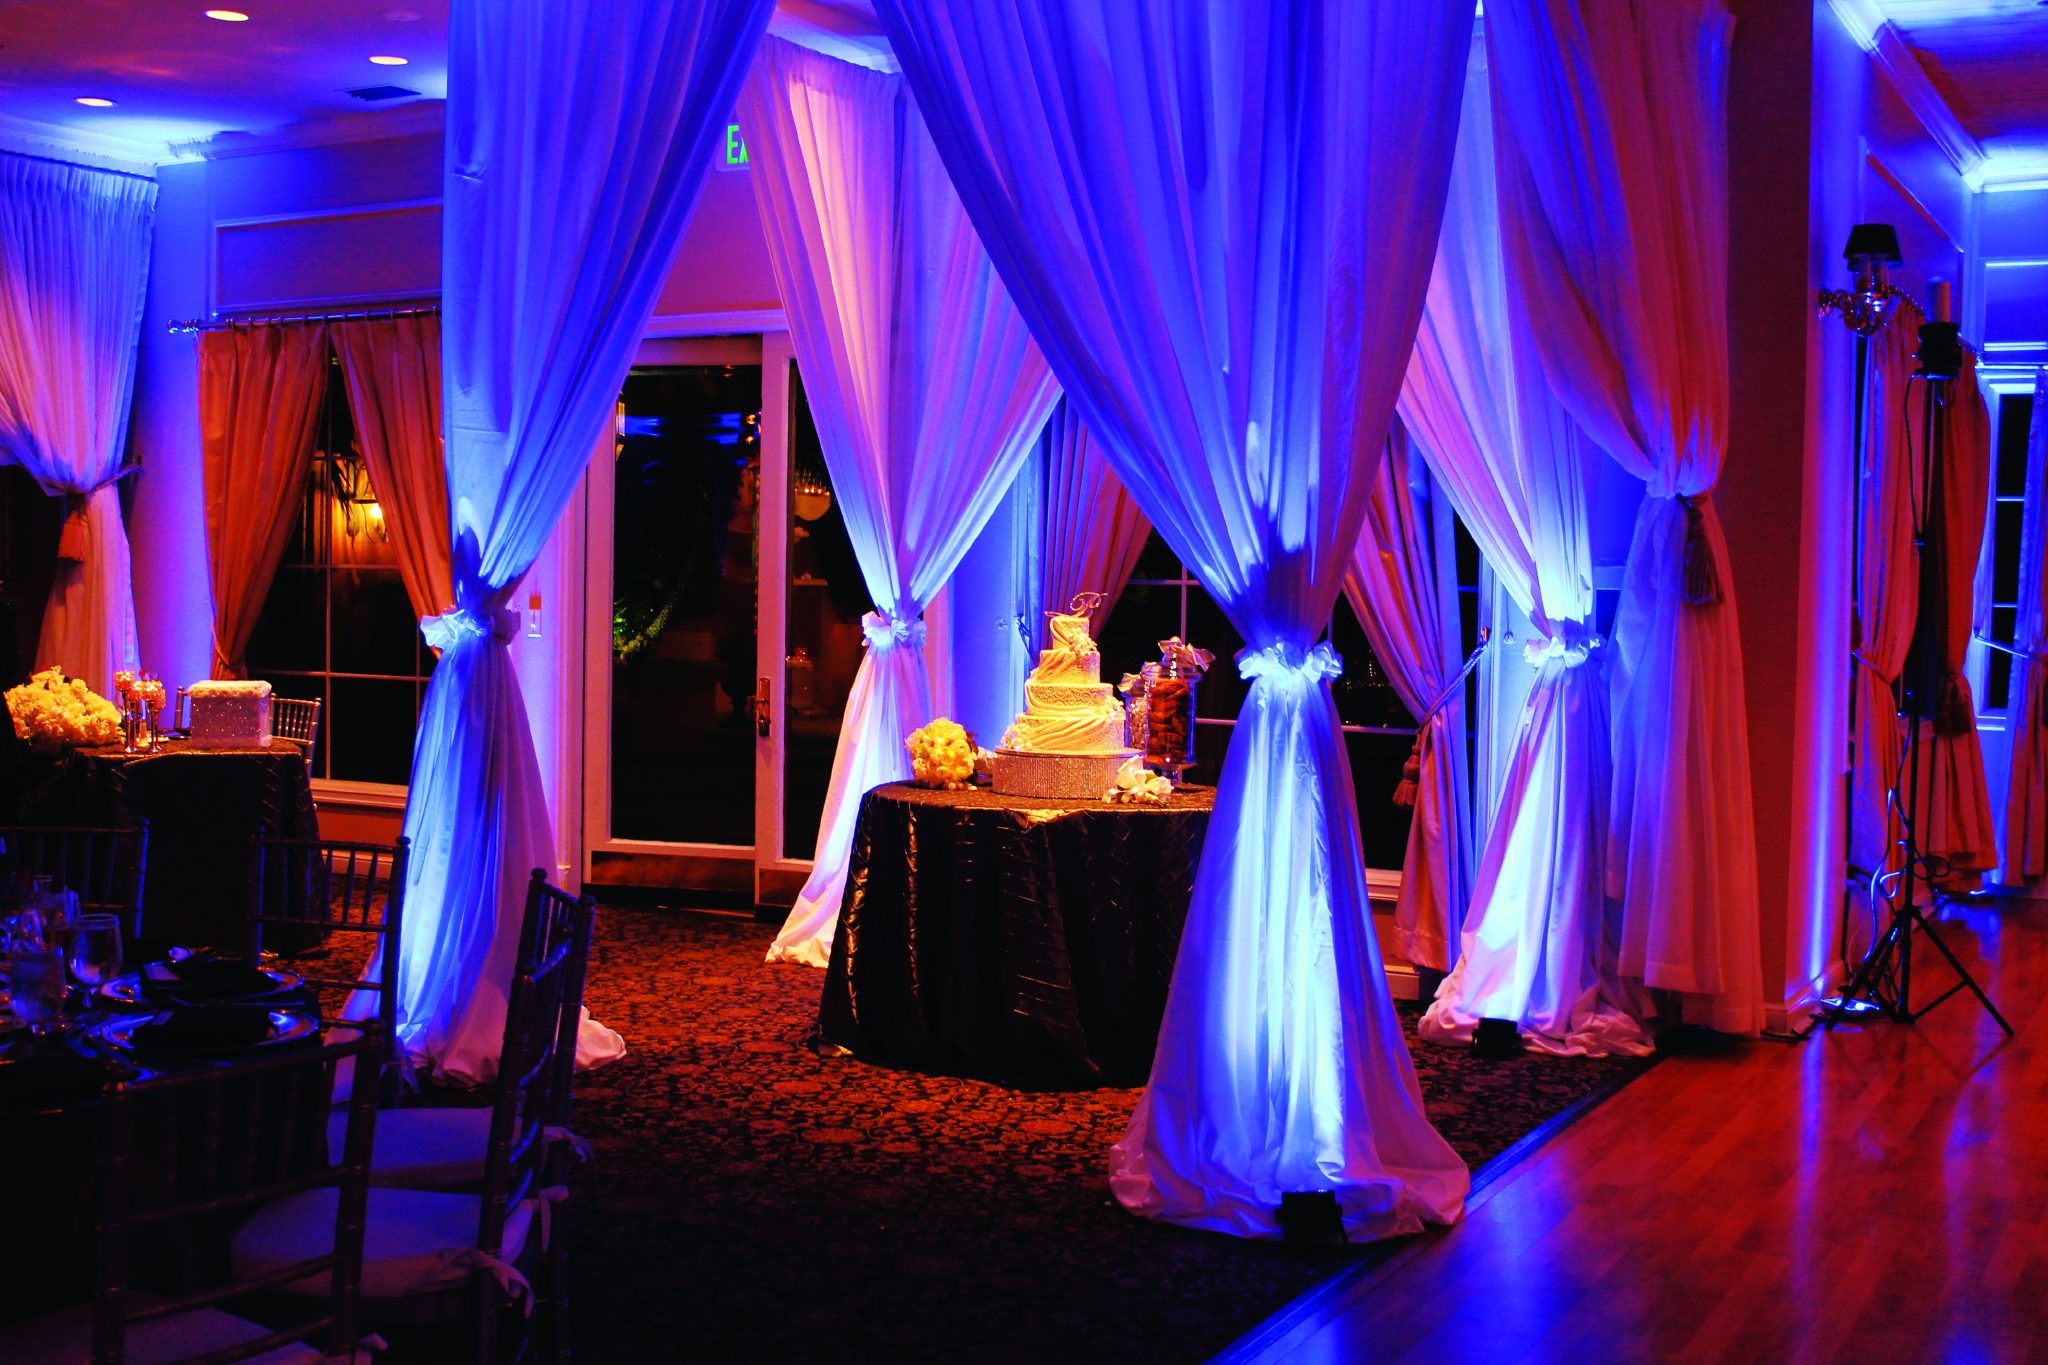 pink on white events lighting design orlando to projection portfolio uplighitng bench hang how floor orlandos drapes gobo dance moon ceiling exclusive drape round blush s for